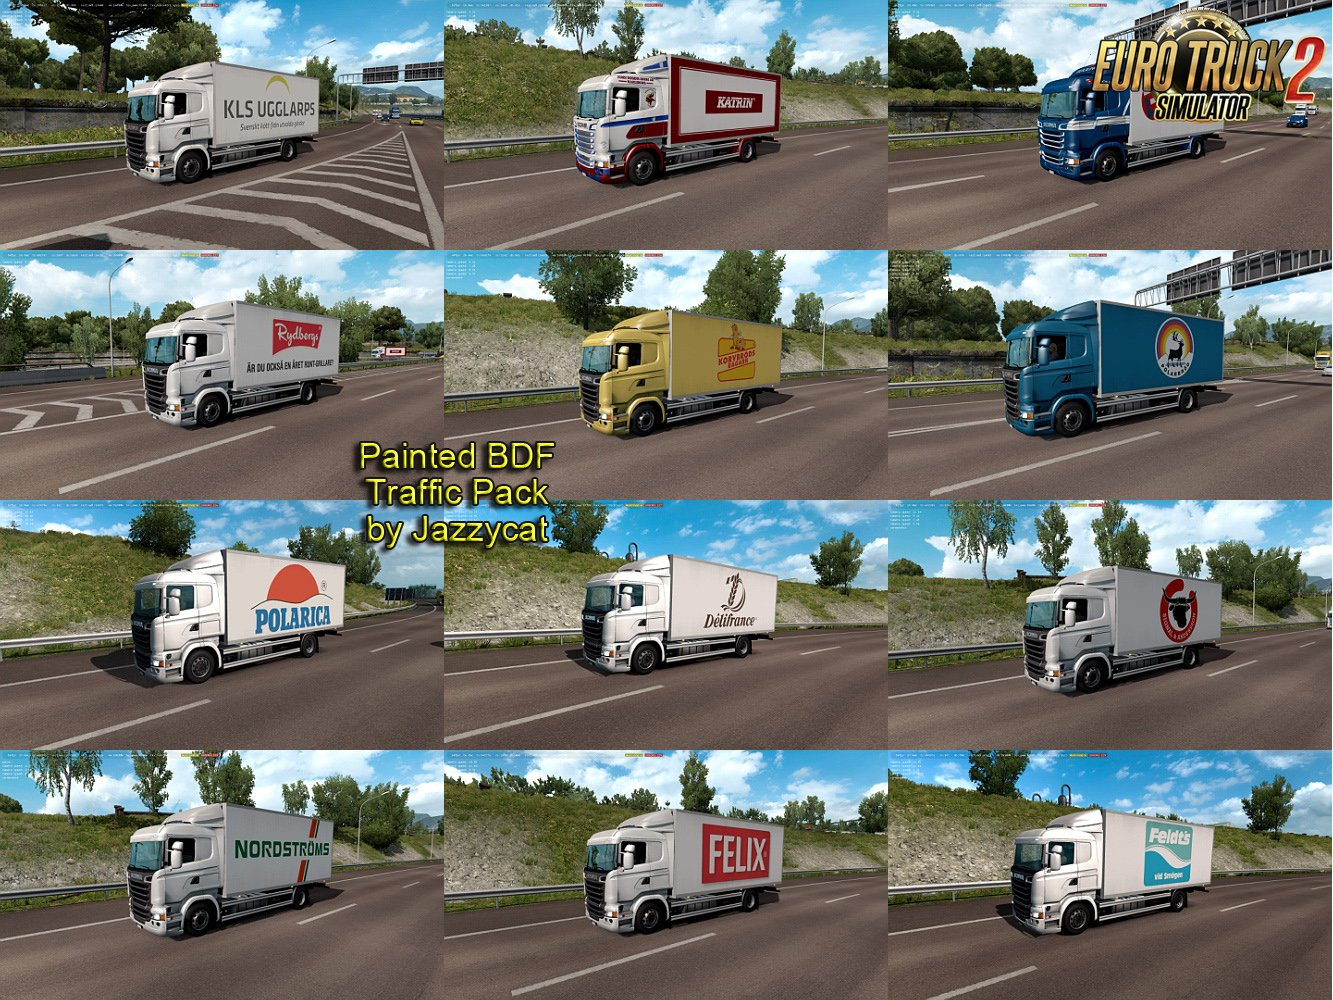 Painted BDF Traffic Pack v4.1 by Jazzycat